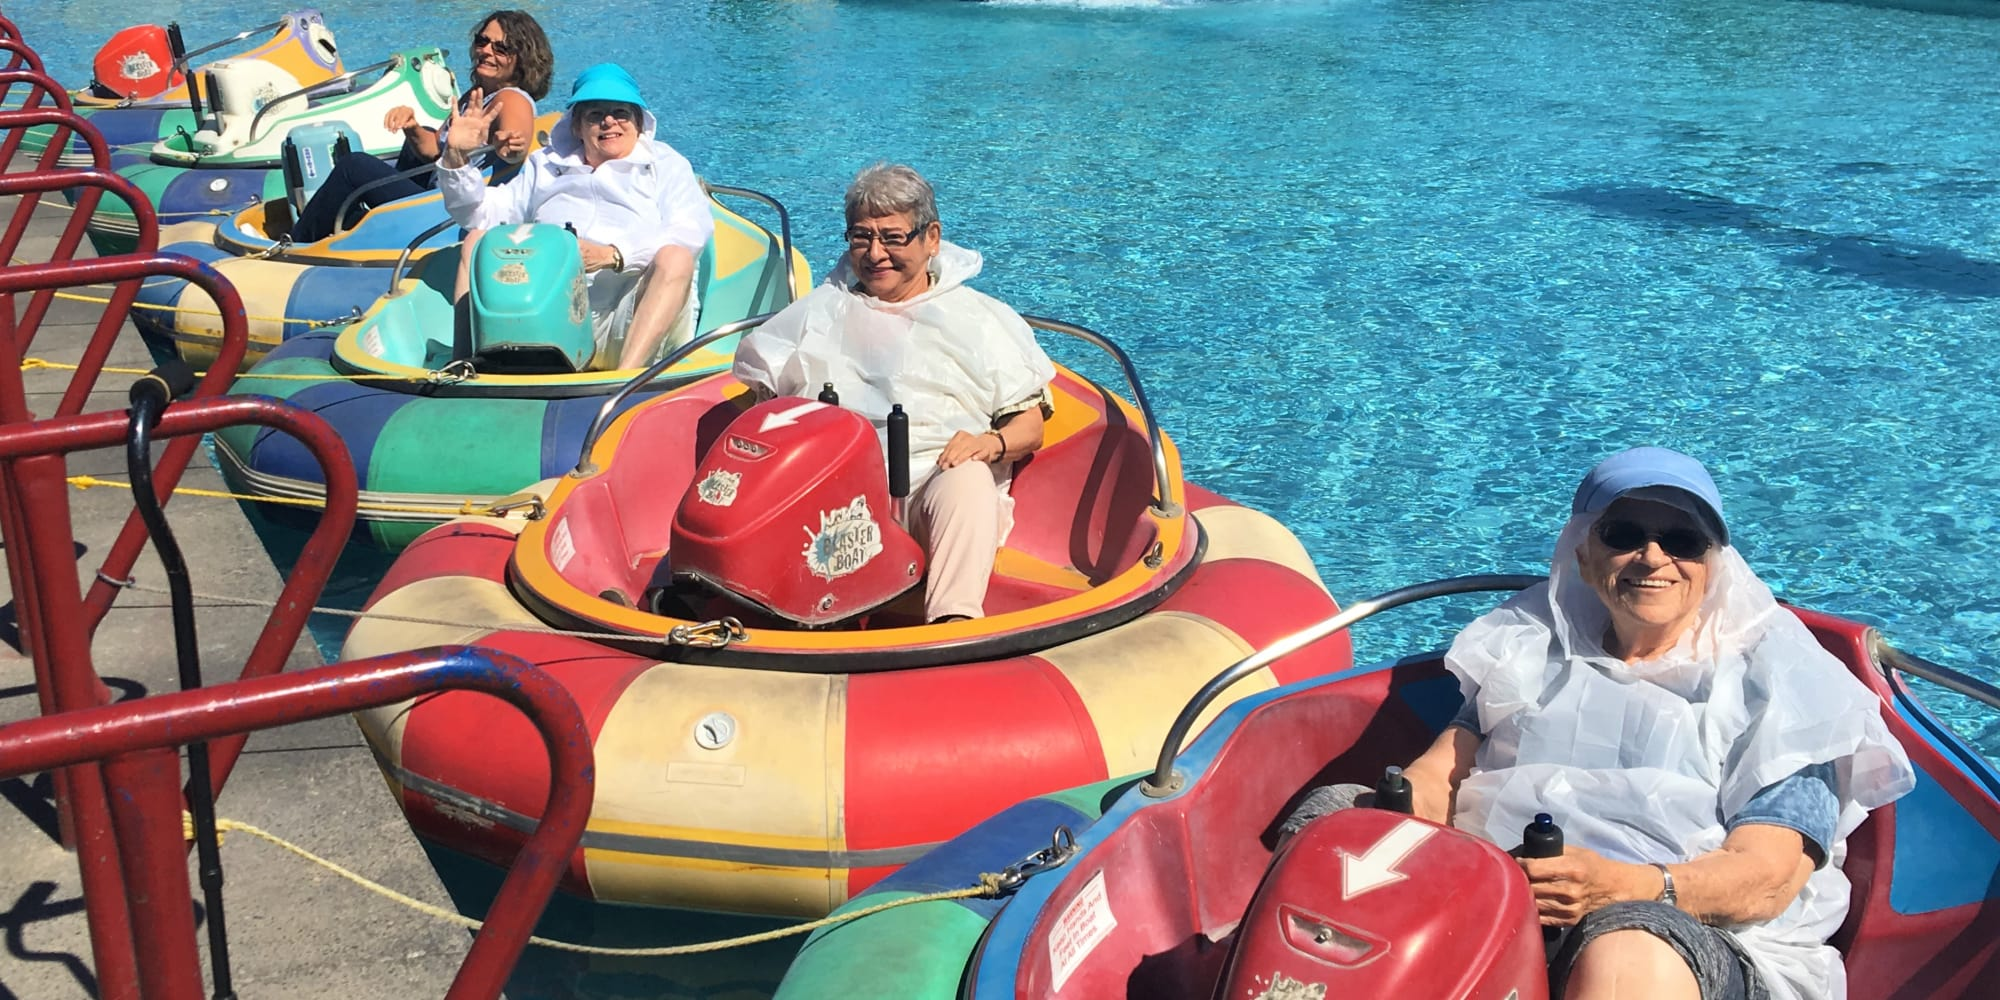 Residents from El Dorado Estates Gracious Retirement Living in El Dorado Hills, California on a water ride